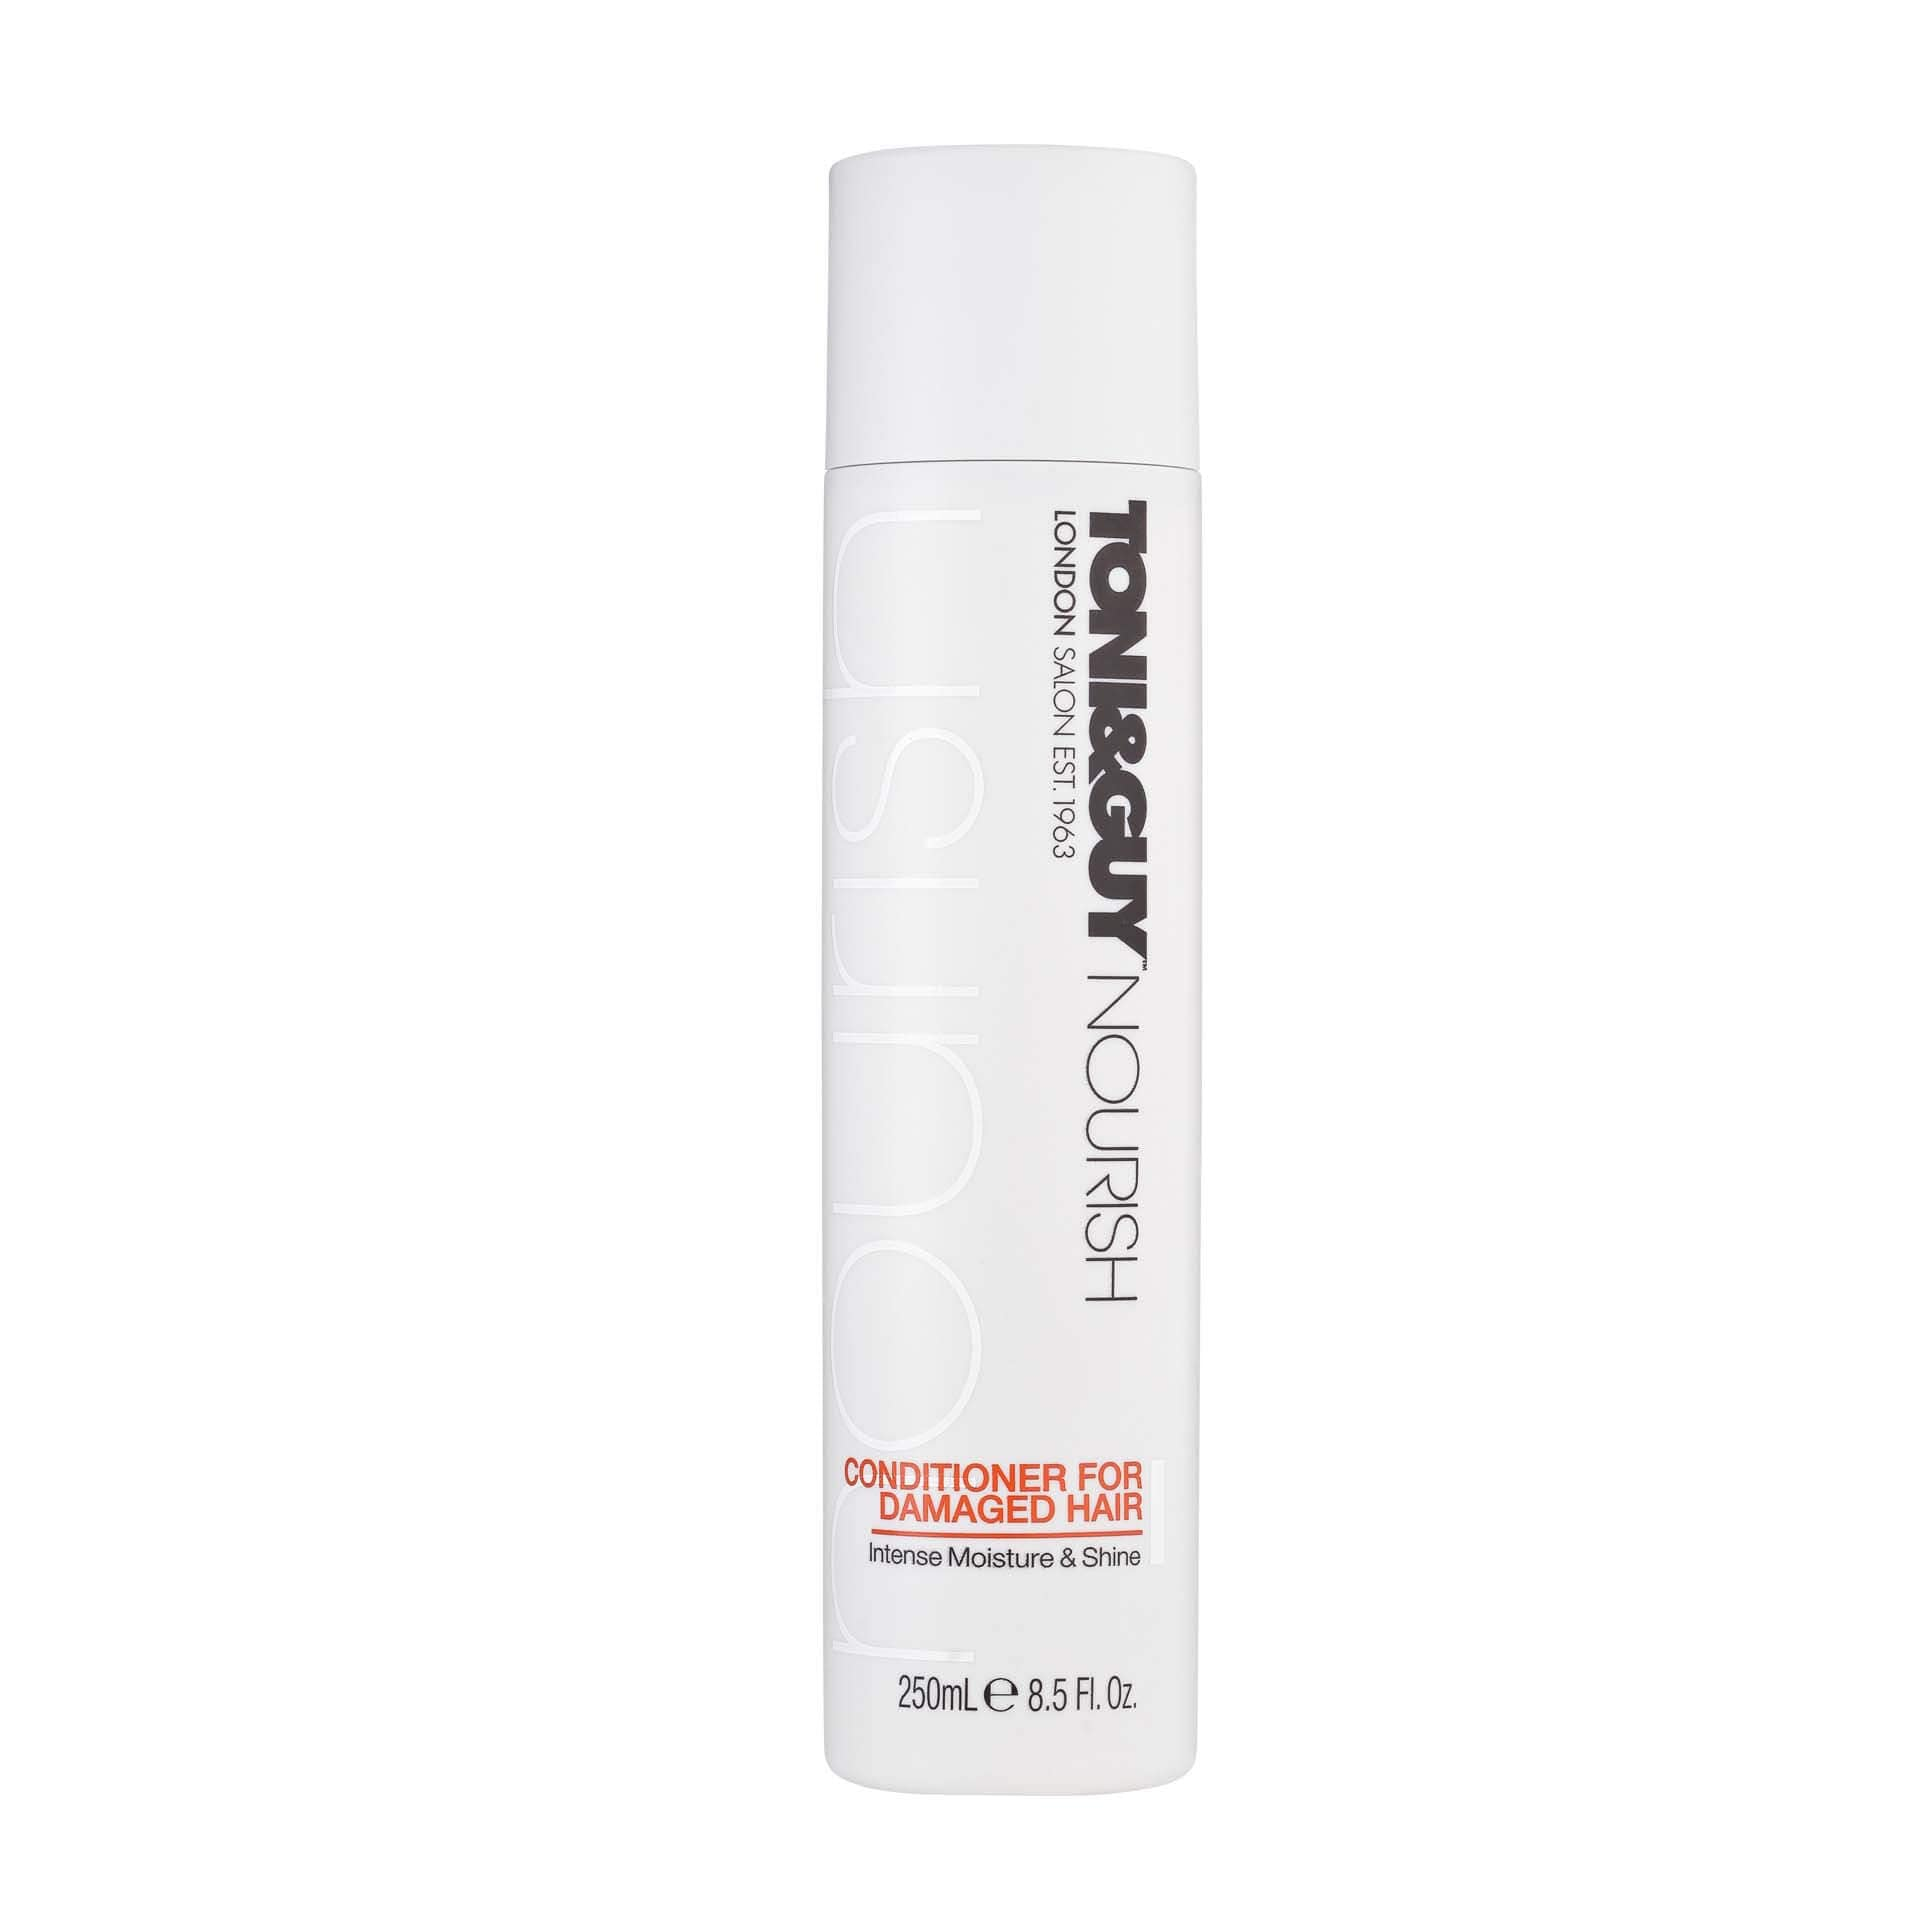 Toni and guy best conditioner for curly hair